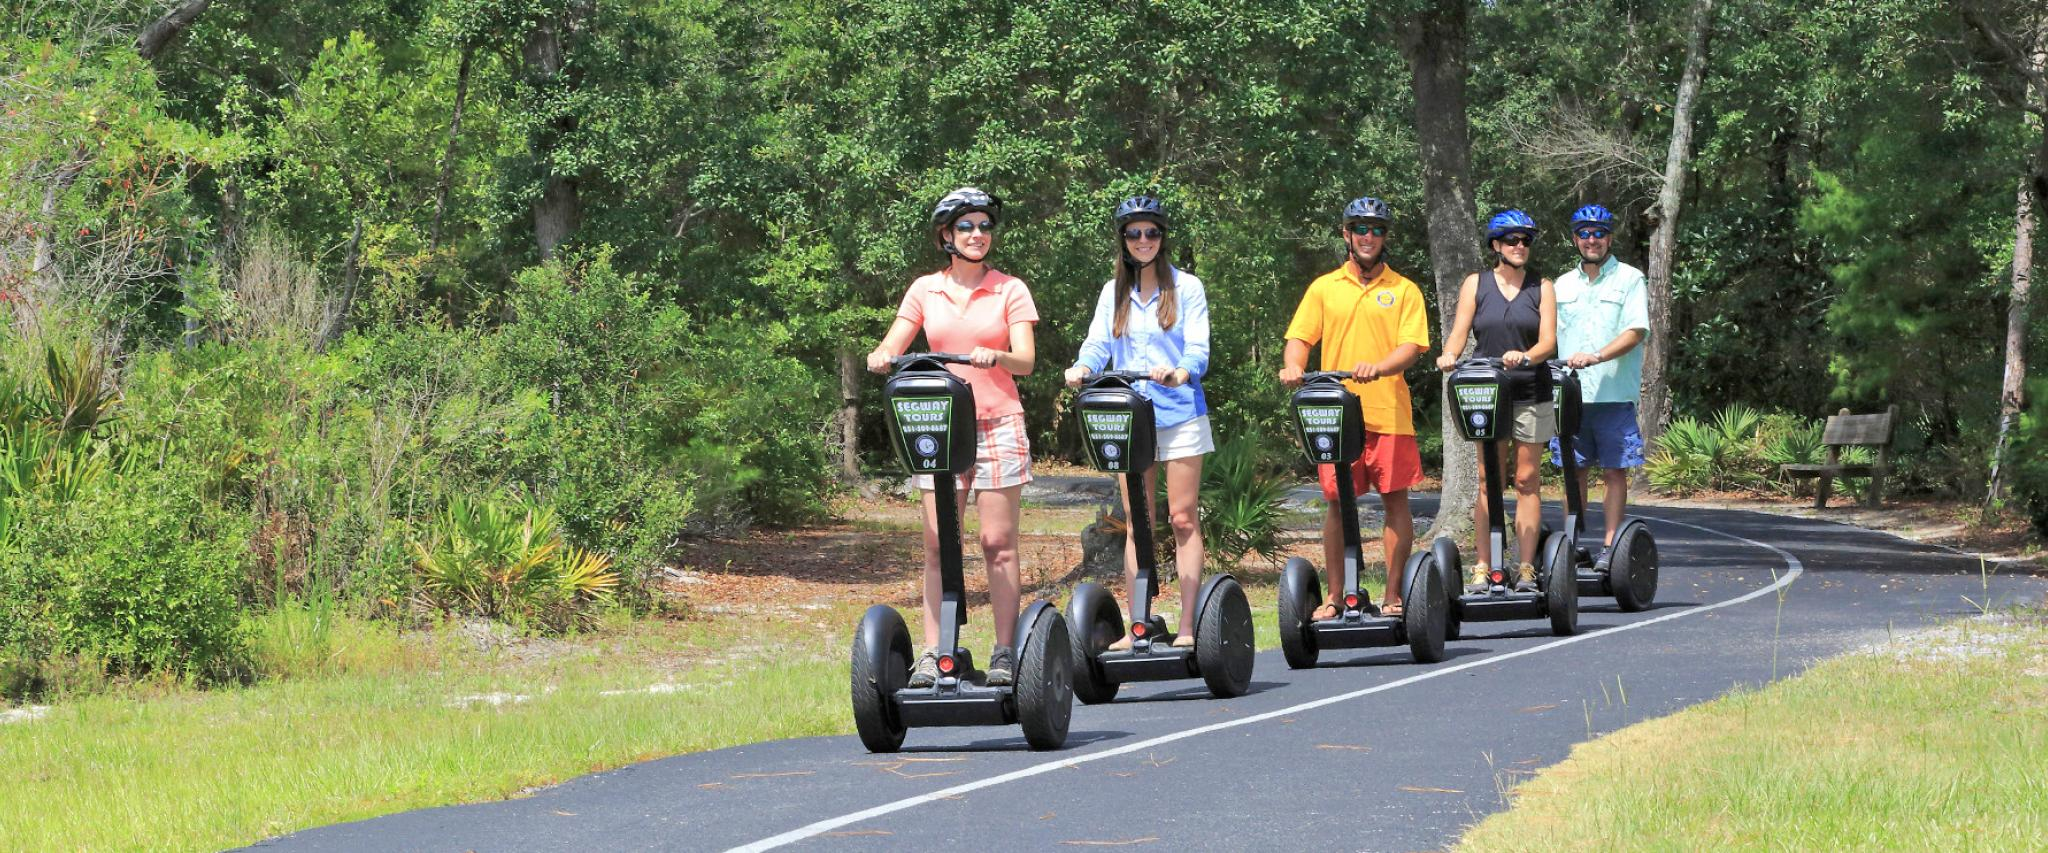 Coastal Segway Adventures in Gulf Shores